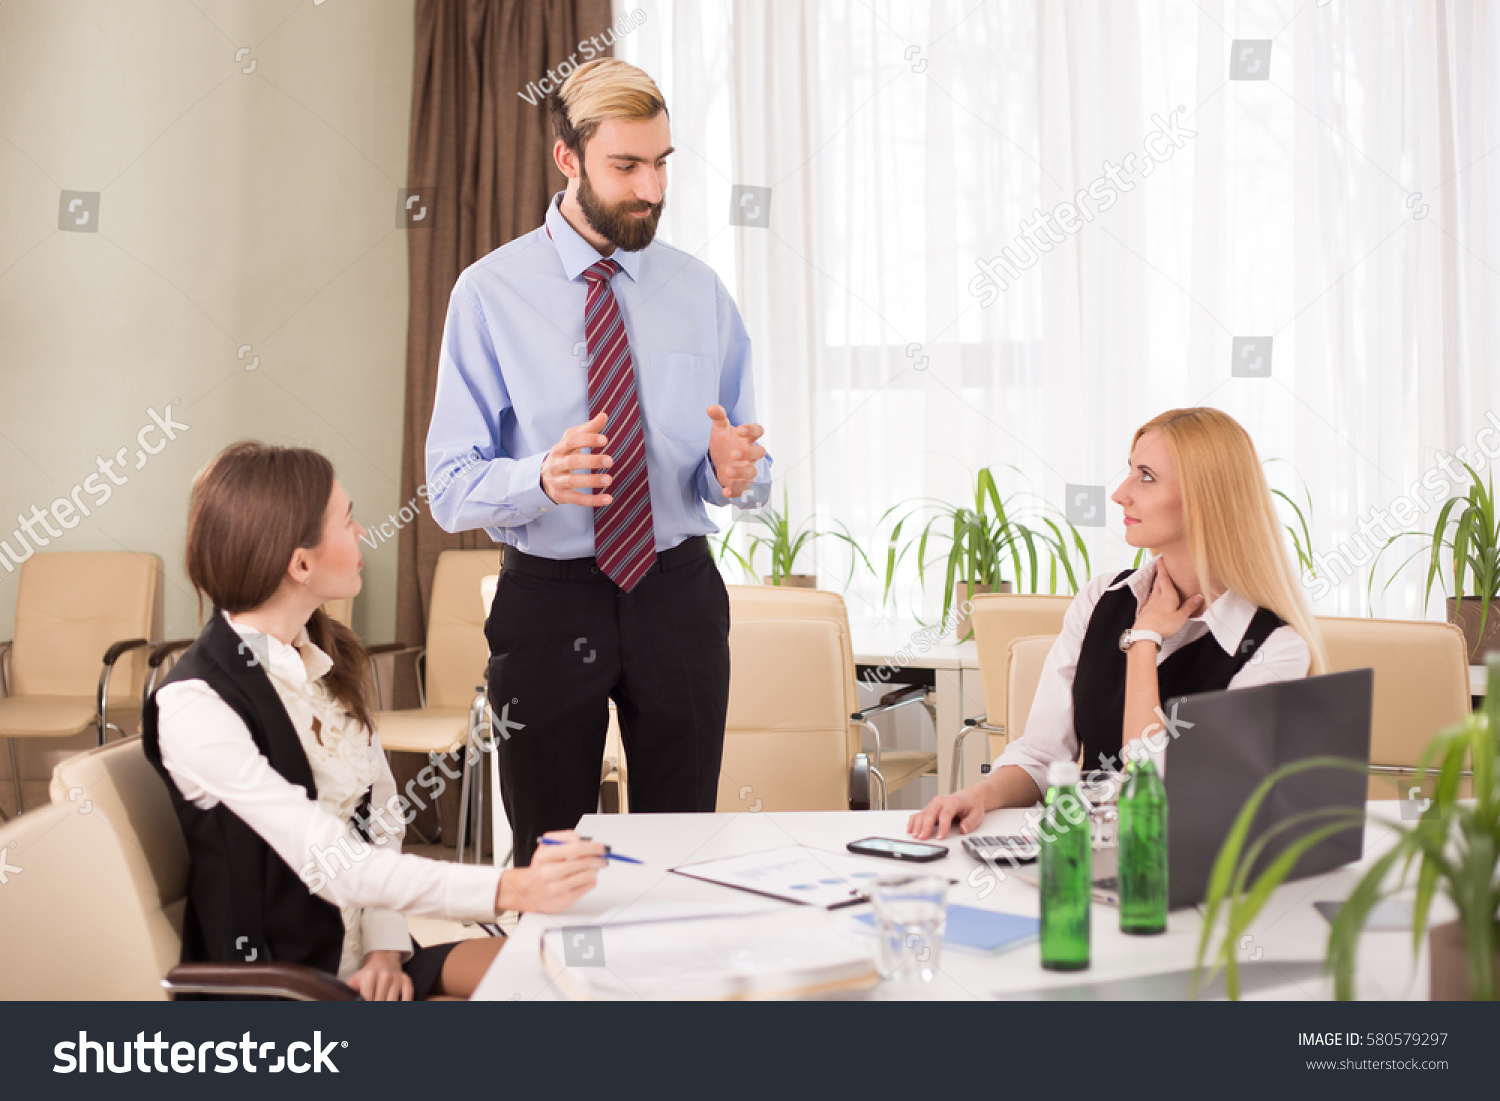 Staff Meeting Discussion Business Meeting Room Stock Photo ...